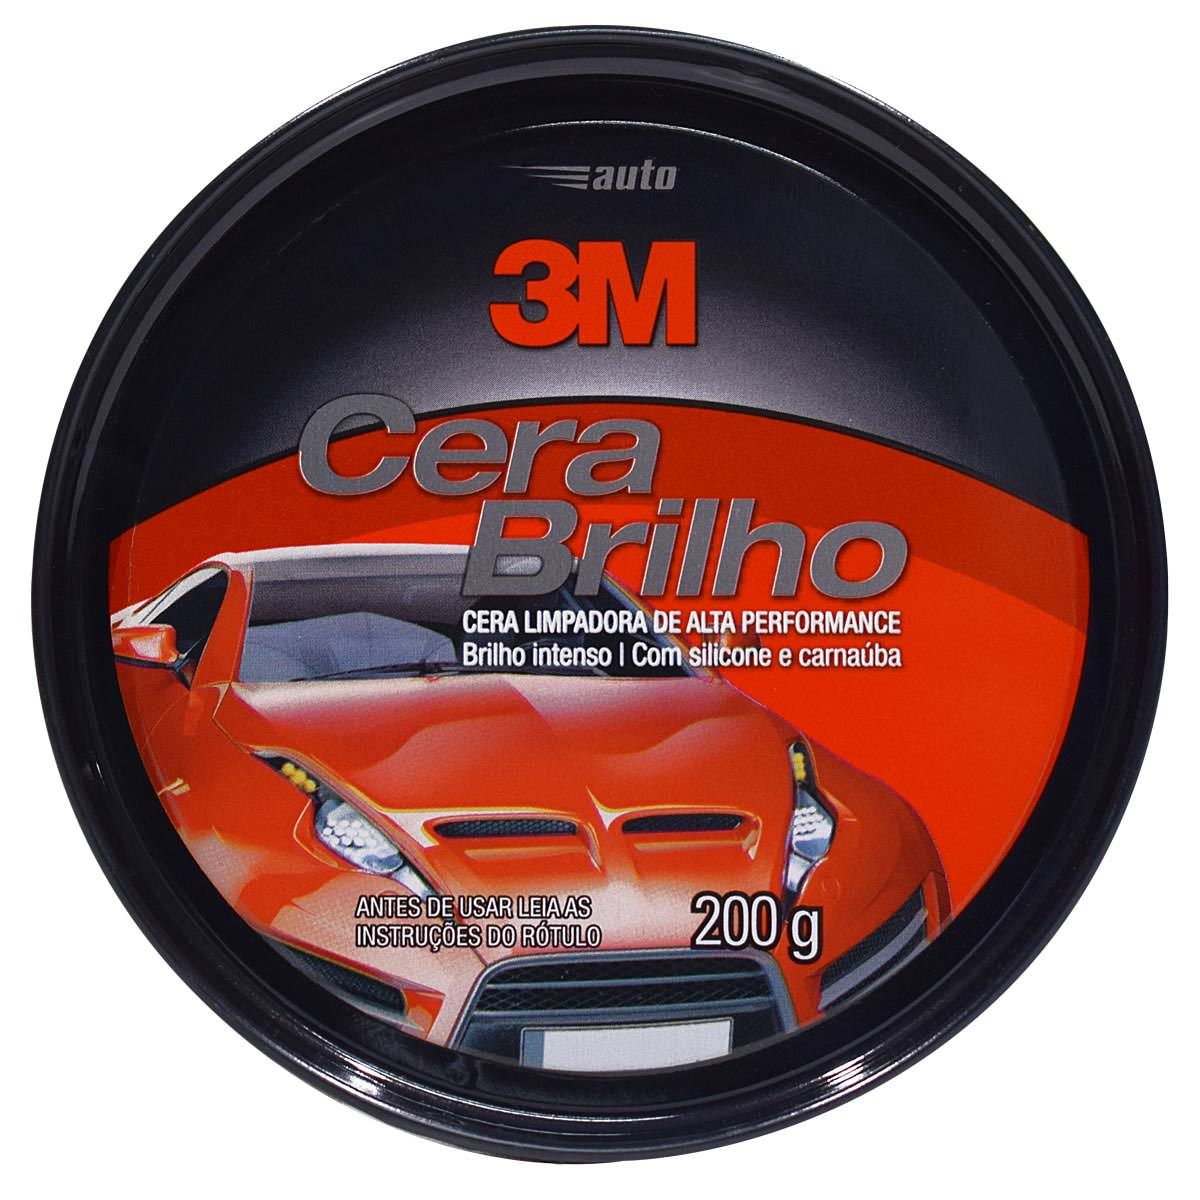 Cera Brilho Automotiva 200gr - 3M